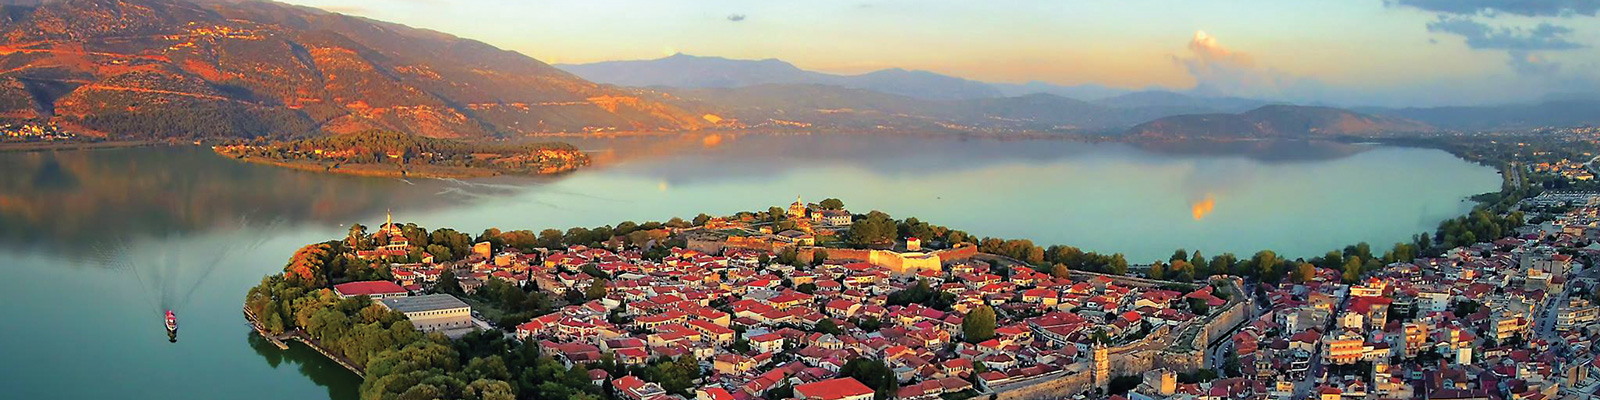 Ioannina panoramic view - Ioannina castle & lake pamvotida